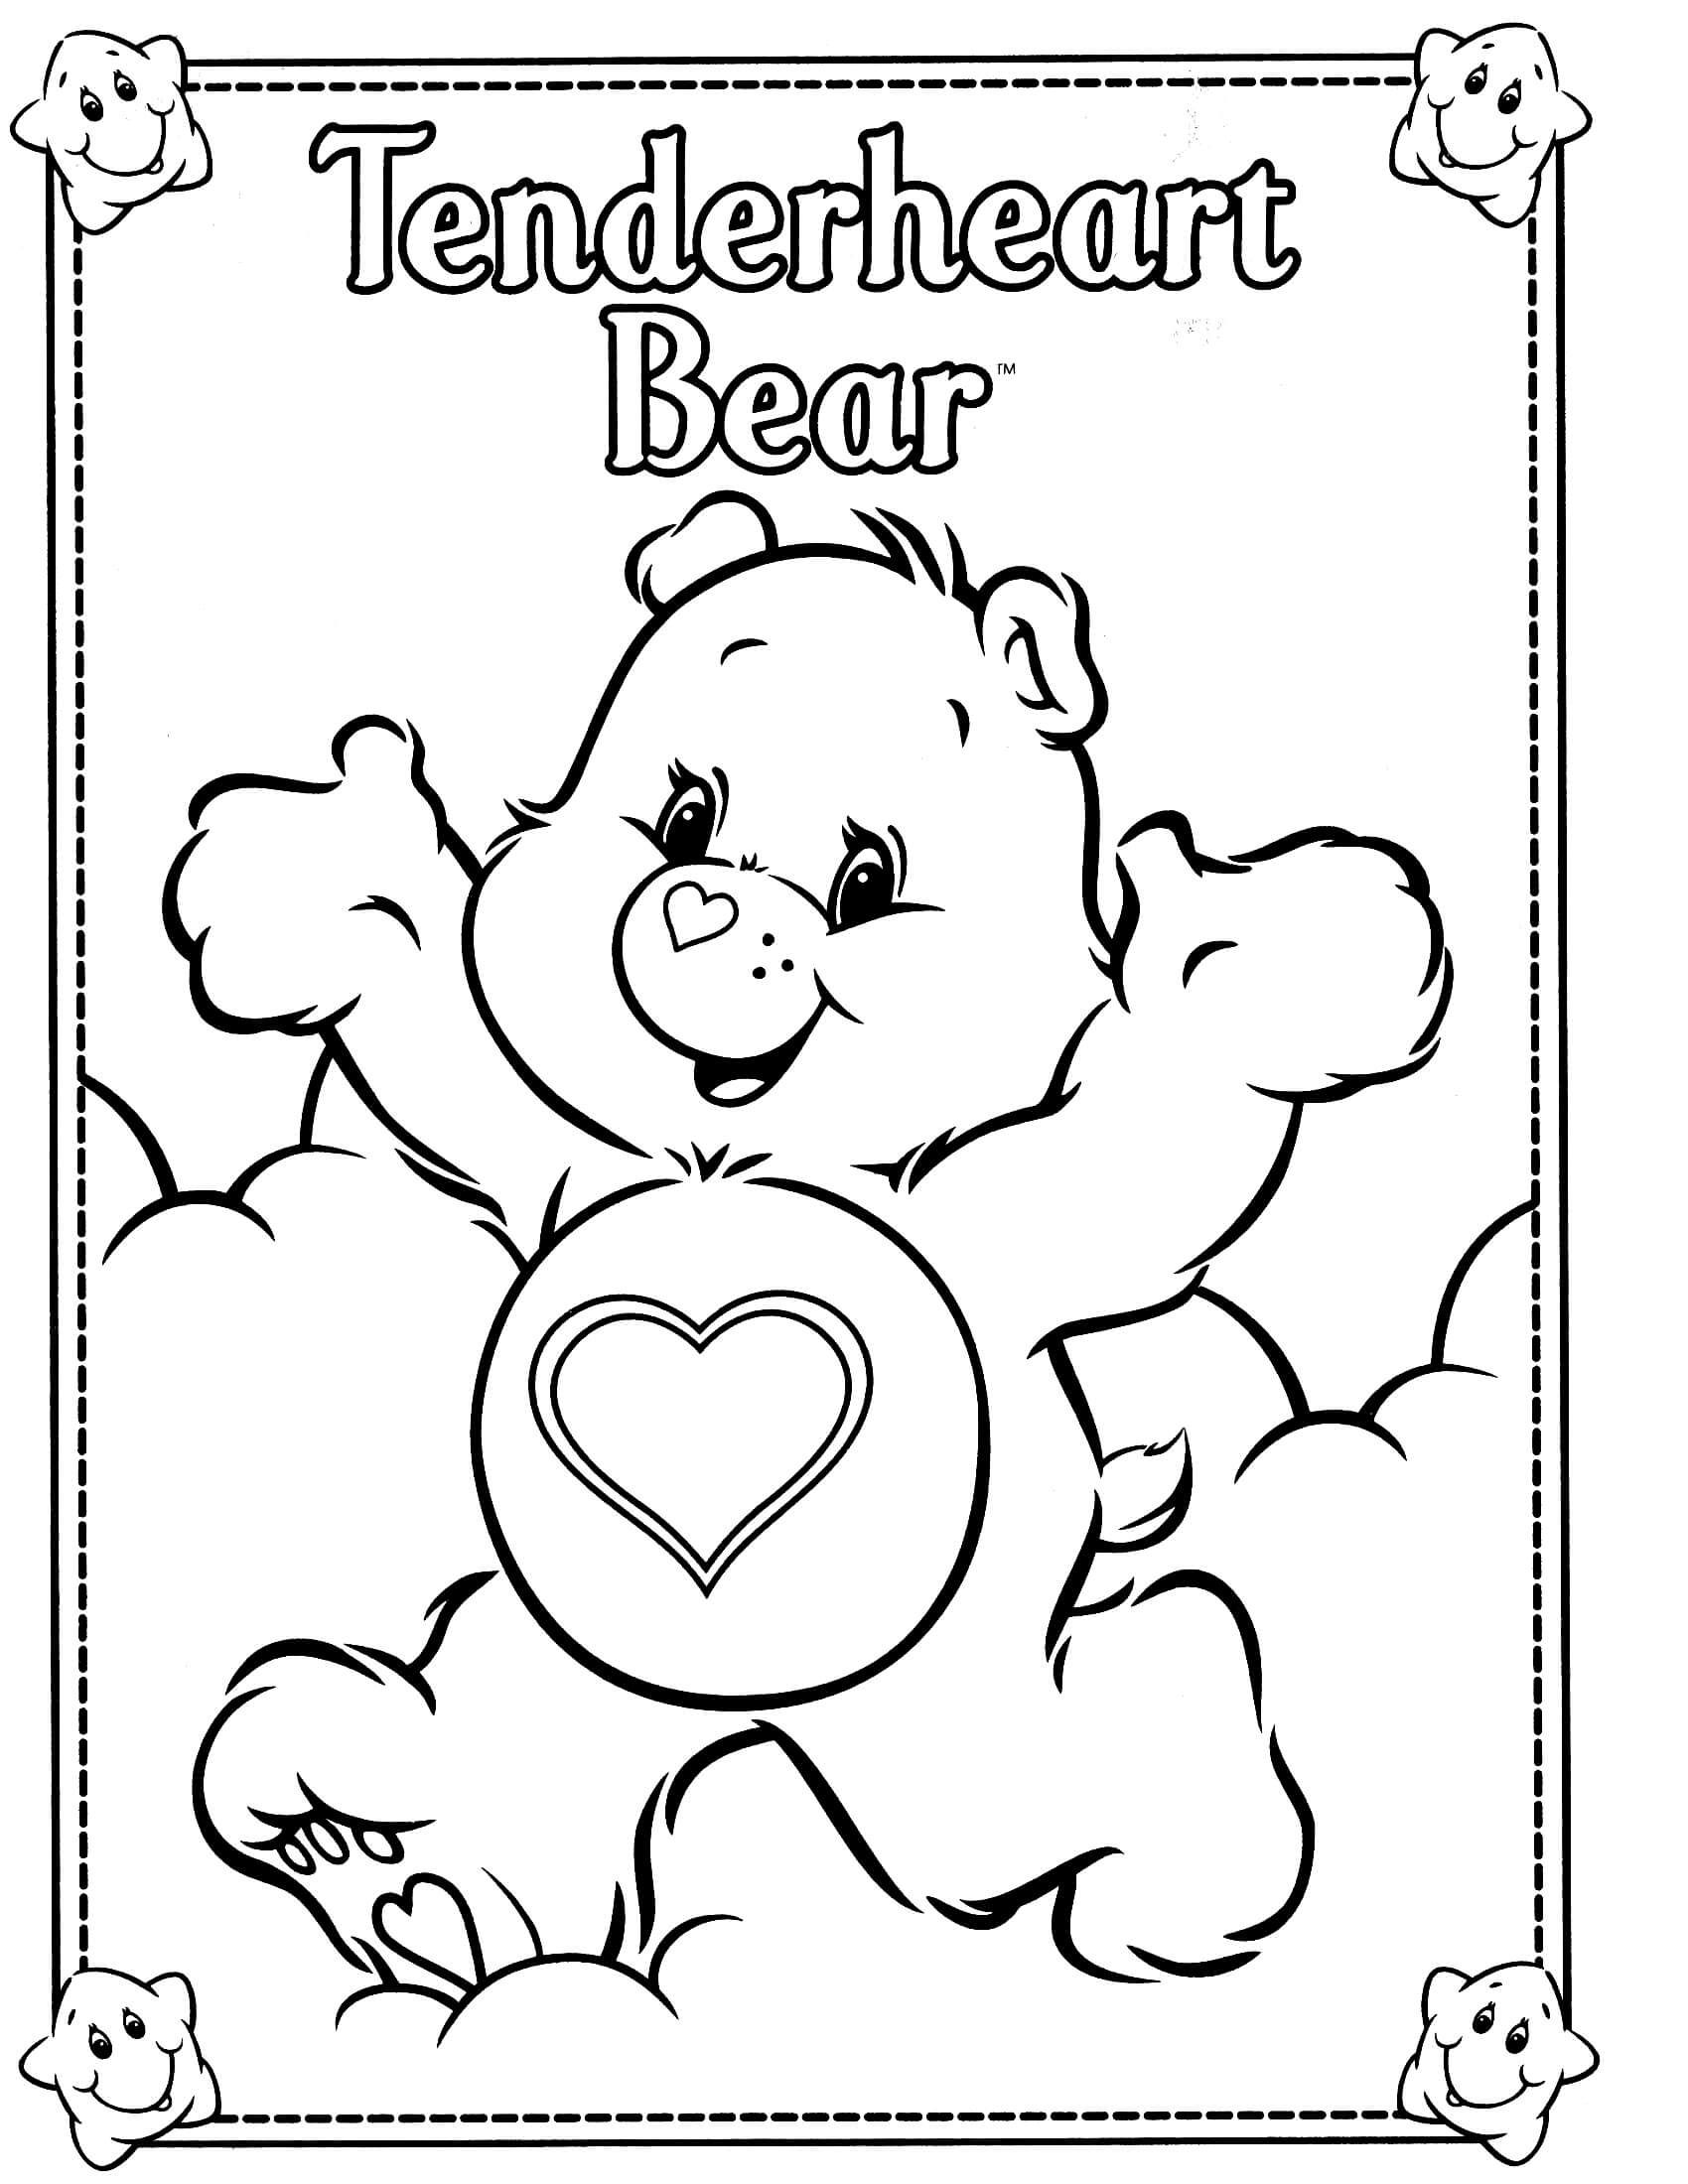 Tenderheart Bear Bear Coloring Pages Teddy Bear Coloring Pages